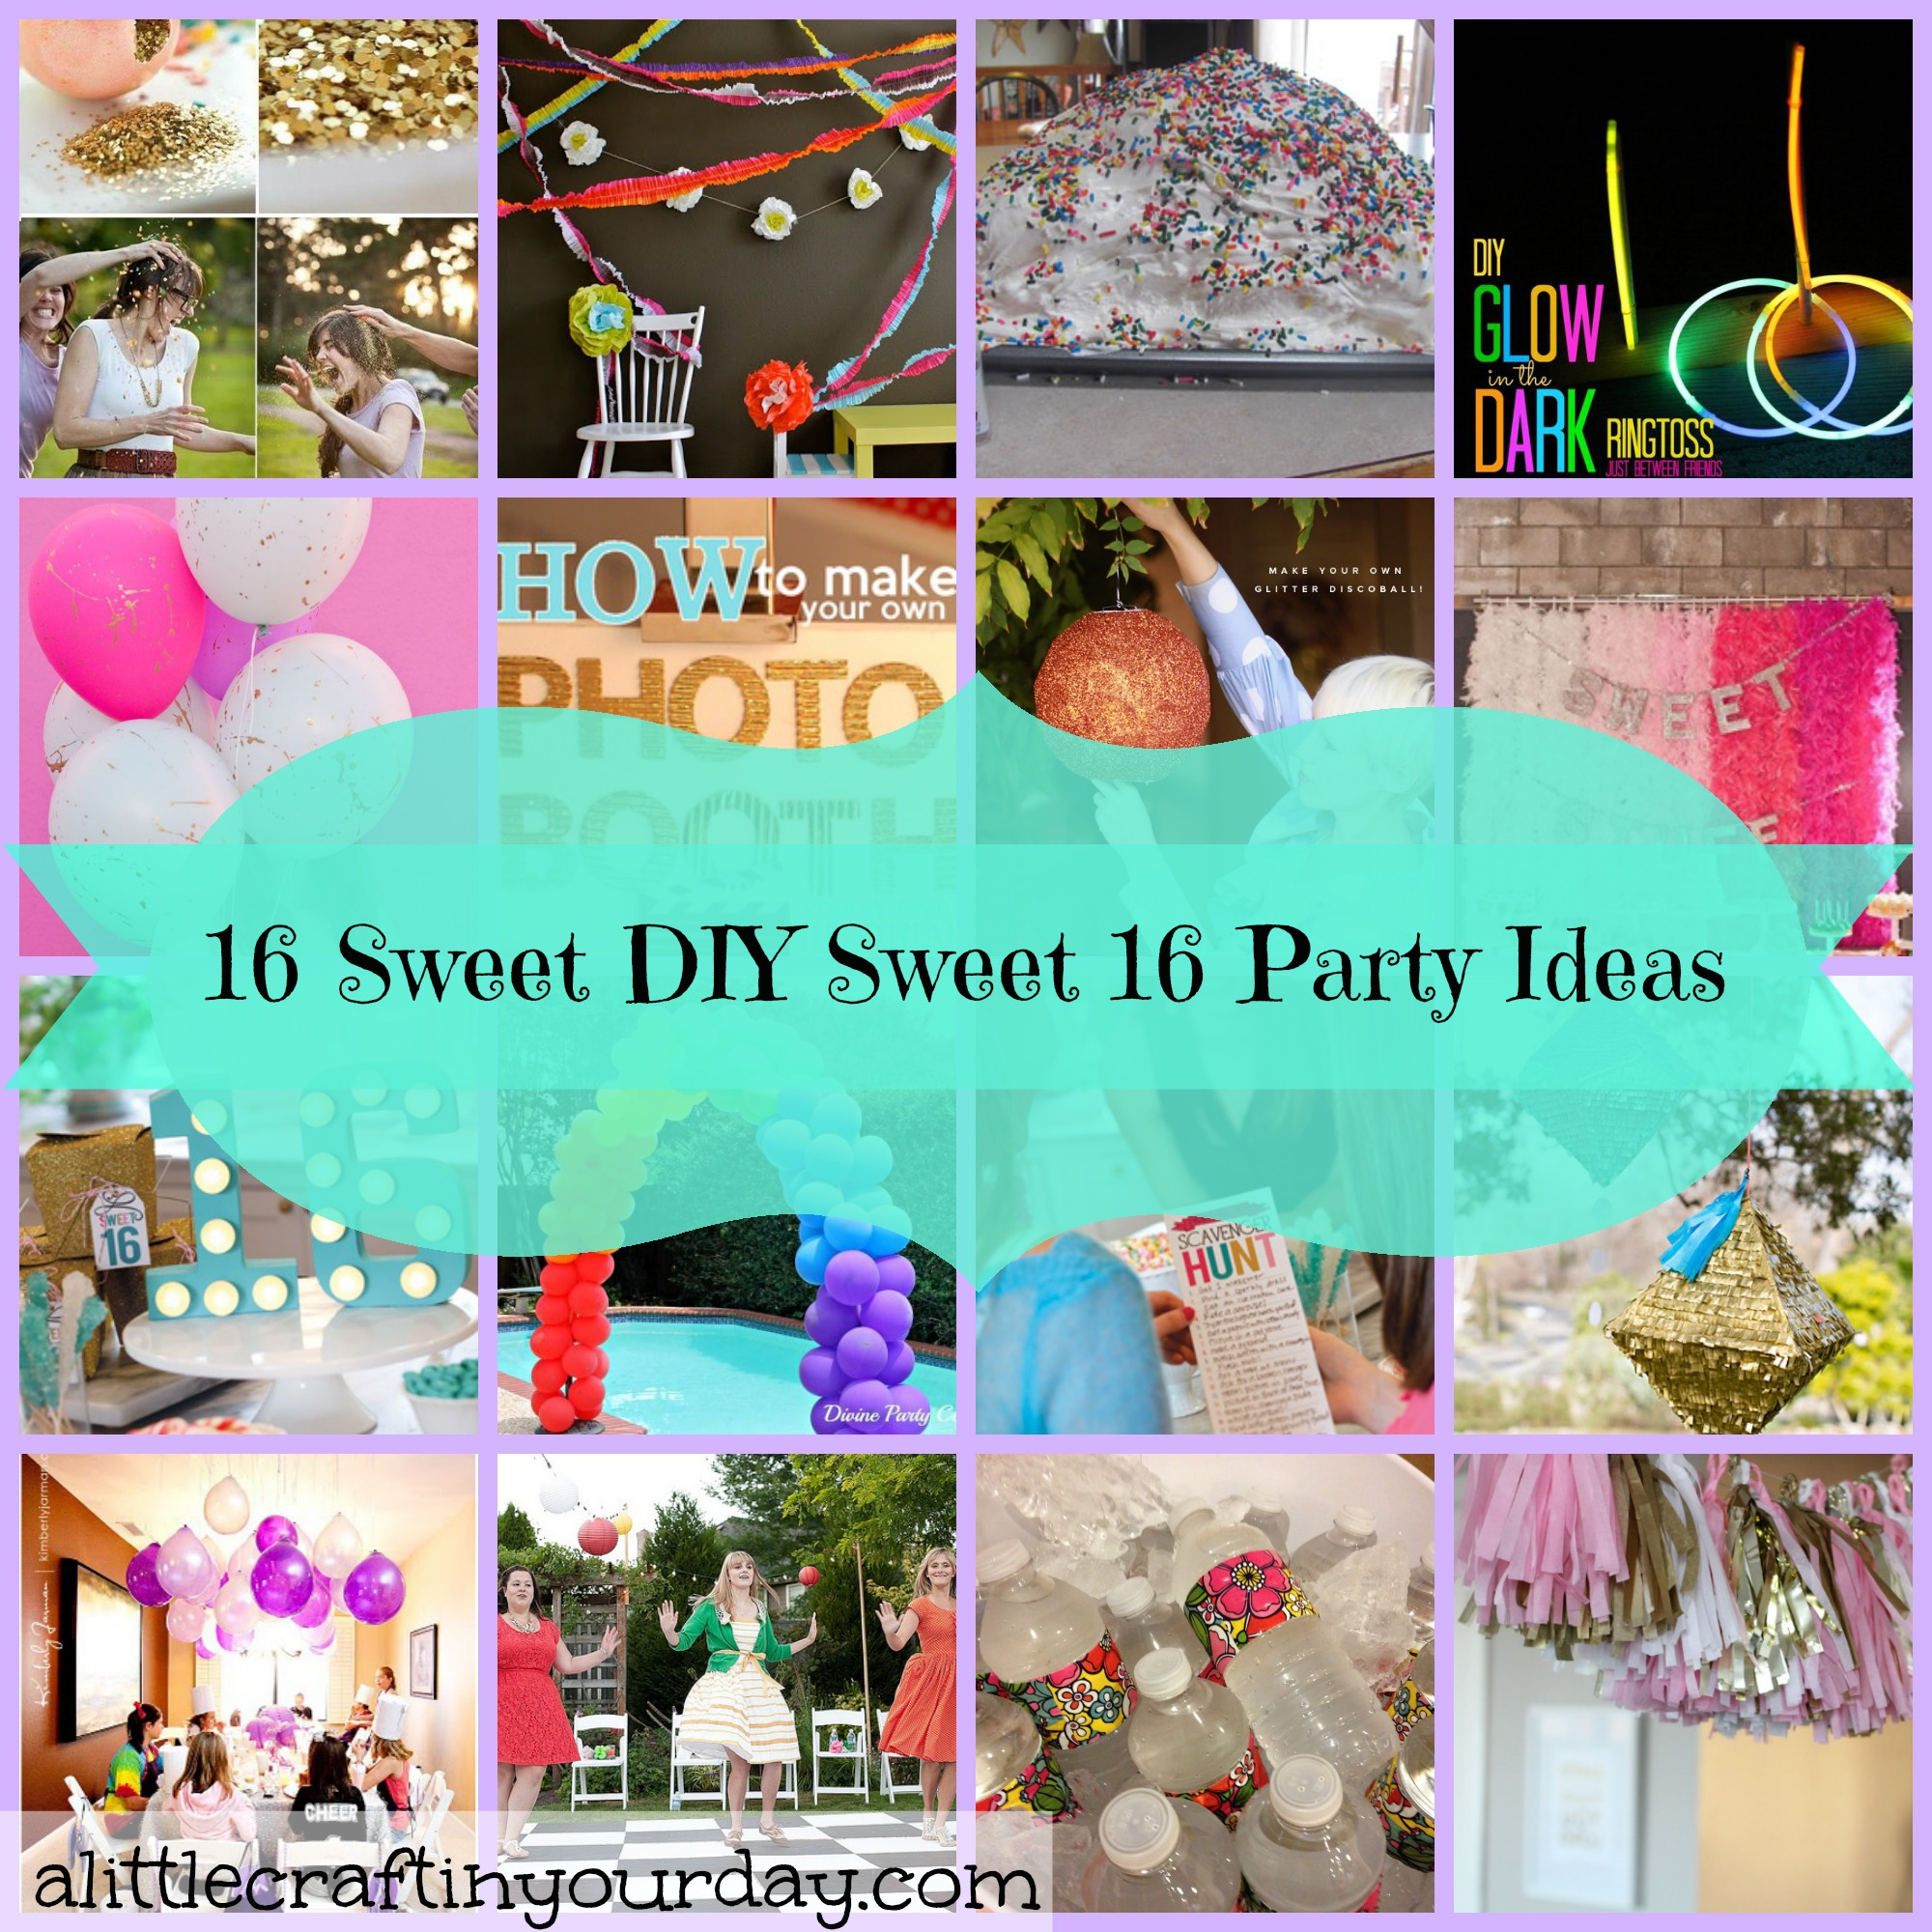 16 Sweet DIY Sweet 16 Party Ideas